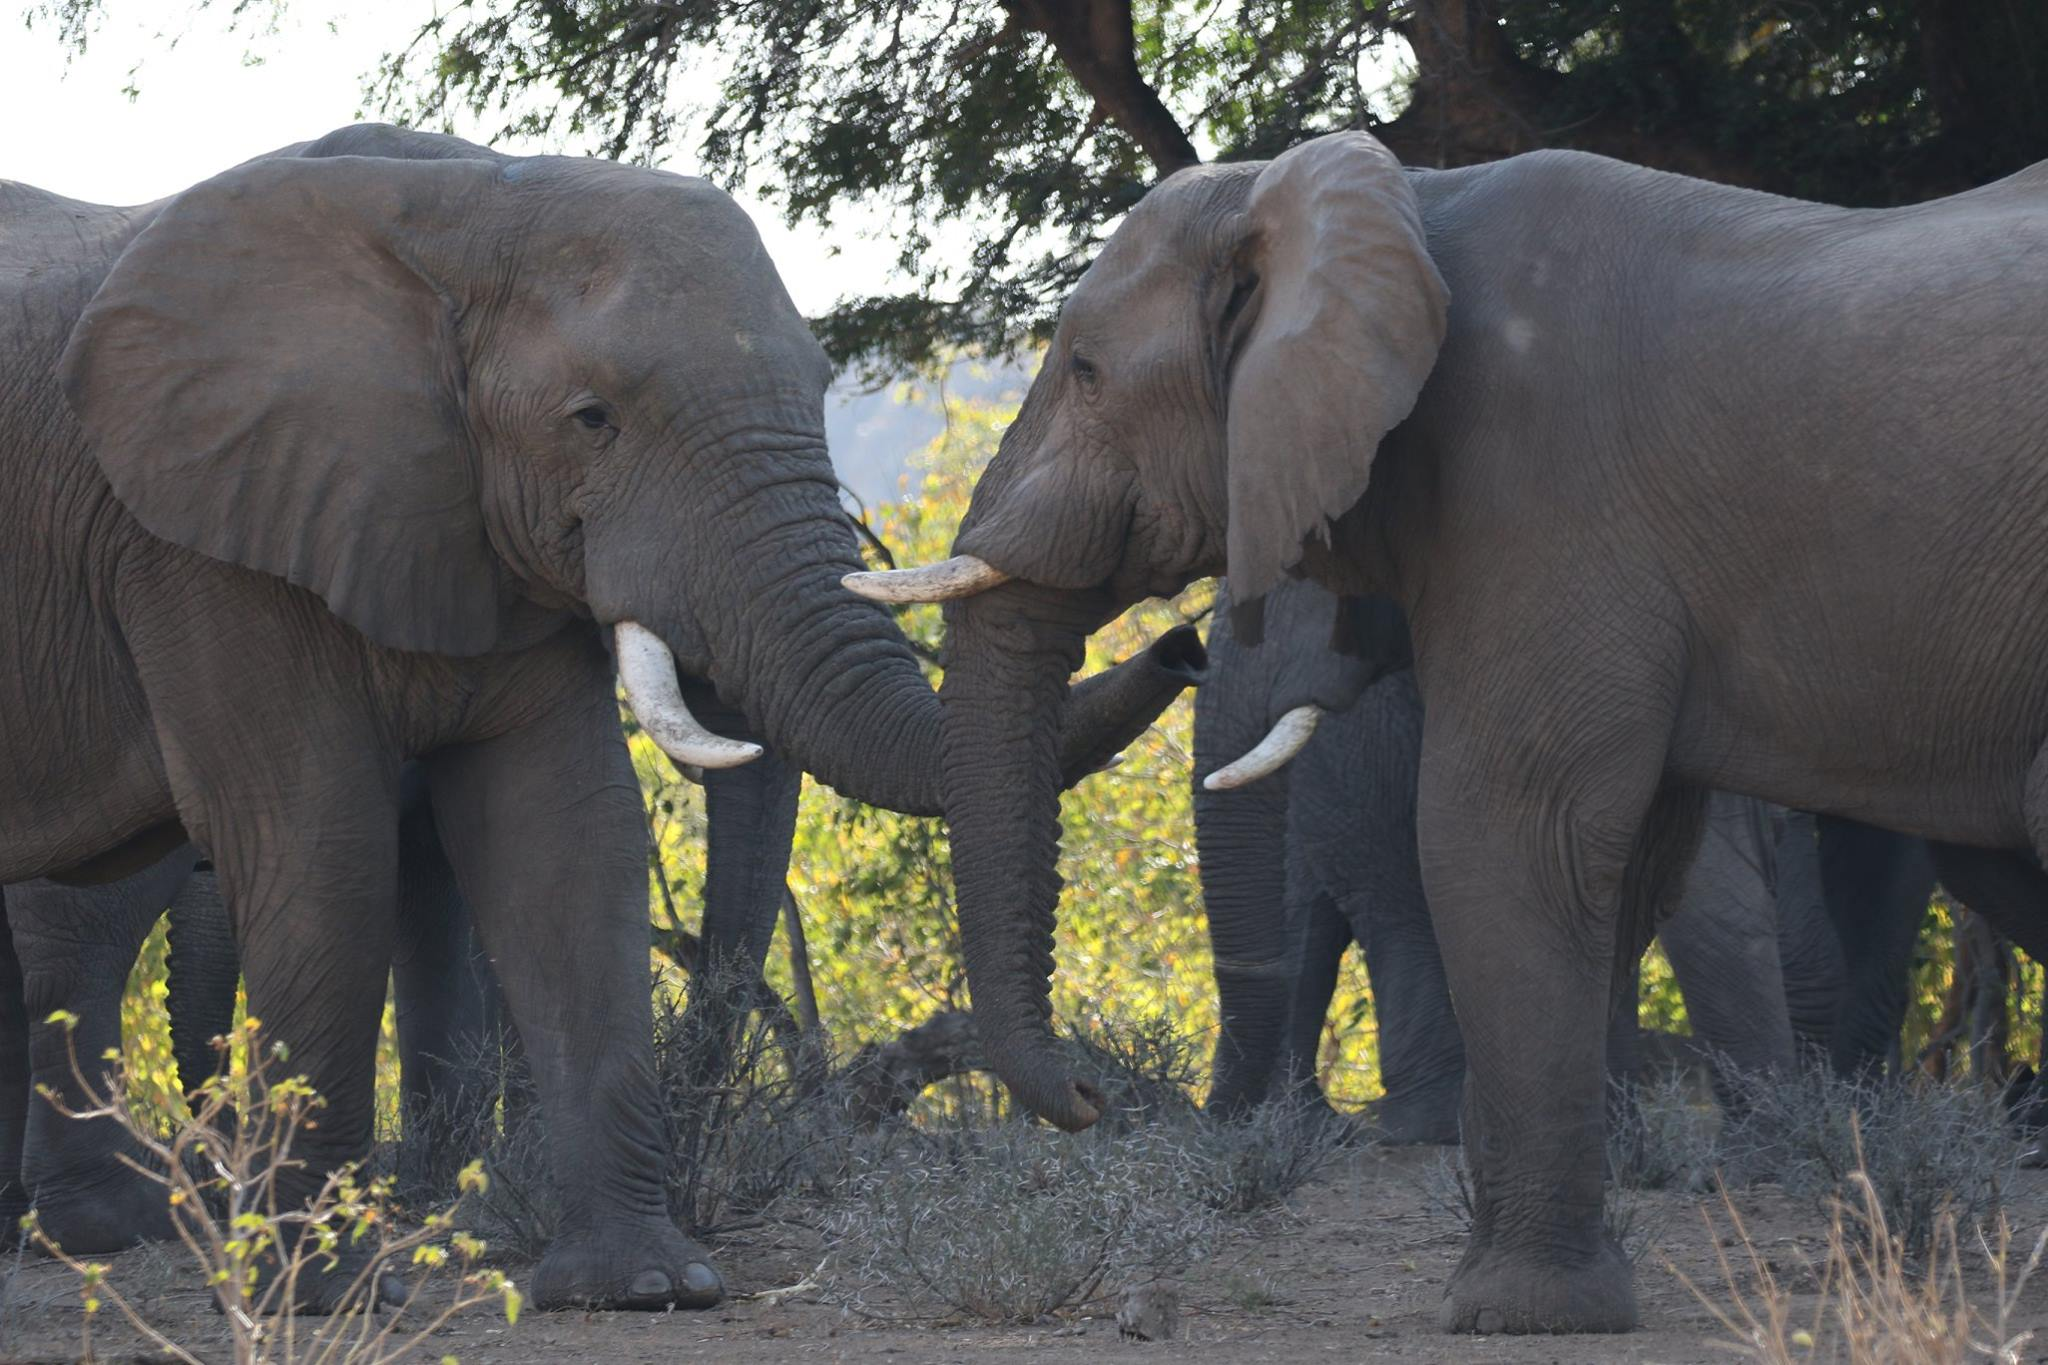 THE PAMS FOUNDATION , WITH HEADQUARTERS IN TANZANIA, IS ON THE FRONT LINES OF THE ANTI-POACHING FIGHT TO SAVE ELEPHANTS. IMAGE: ©PAMS FOUNDATION